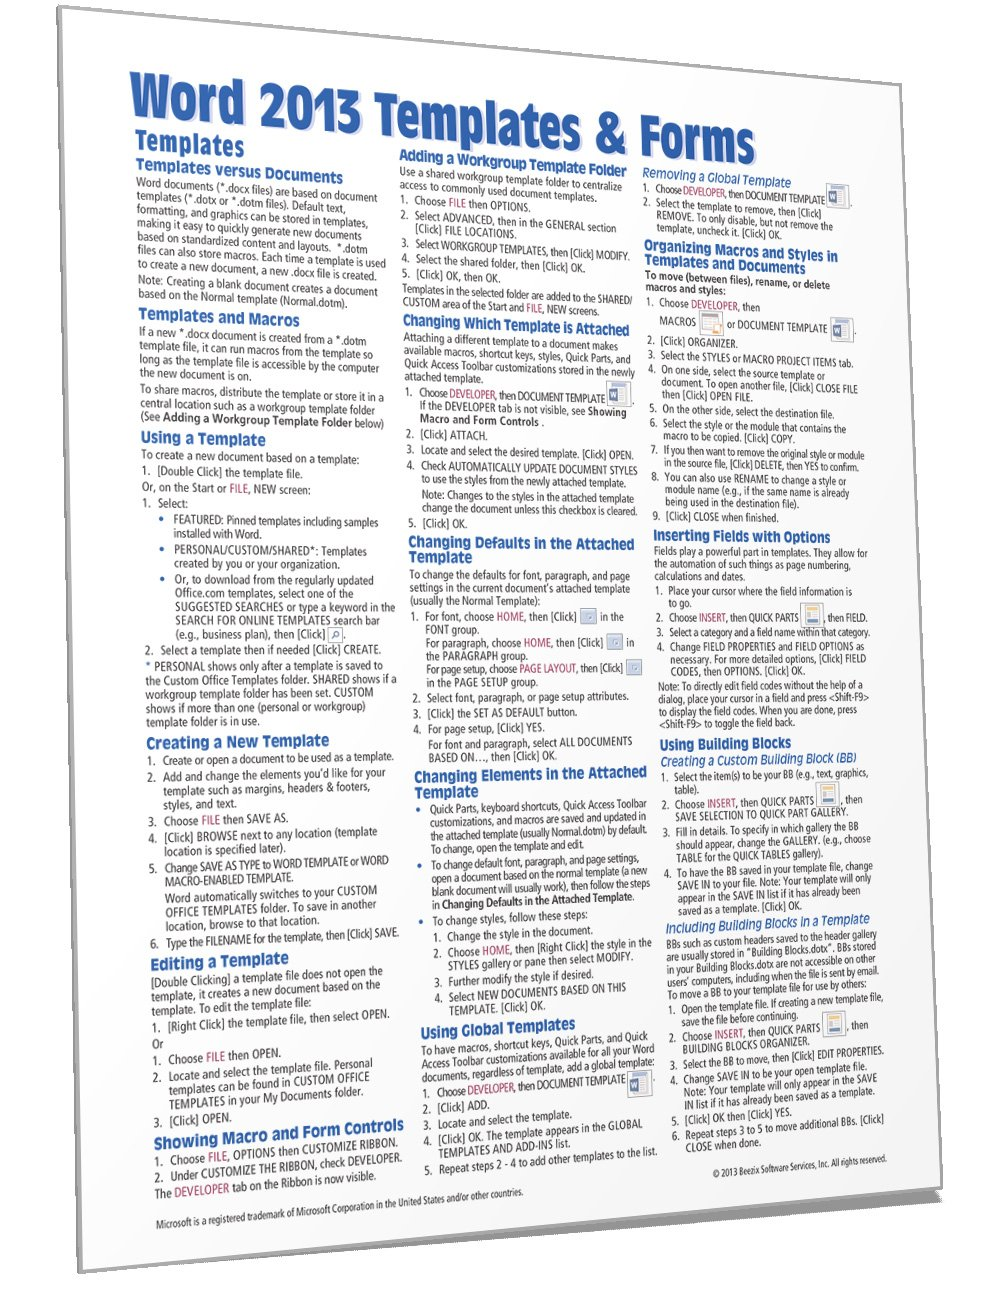 Microsoft Word 21 Templates & Forms Quick Reference Guide (Cheat For Cheat Sheet Template Word